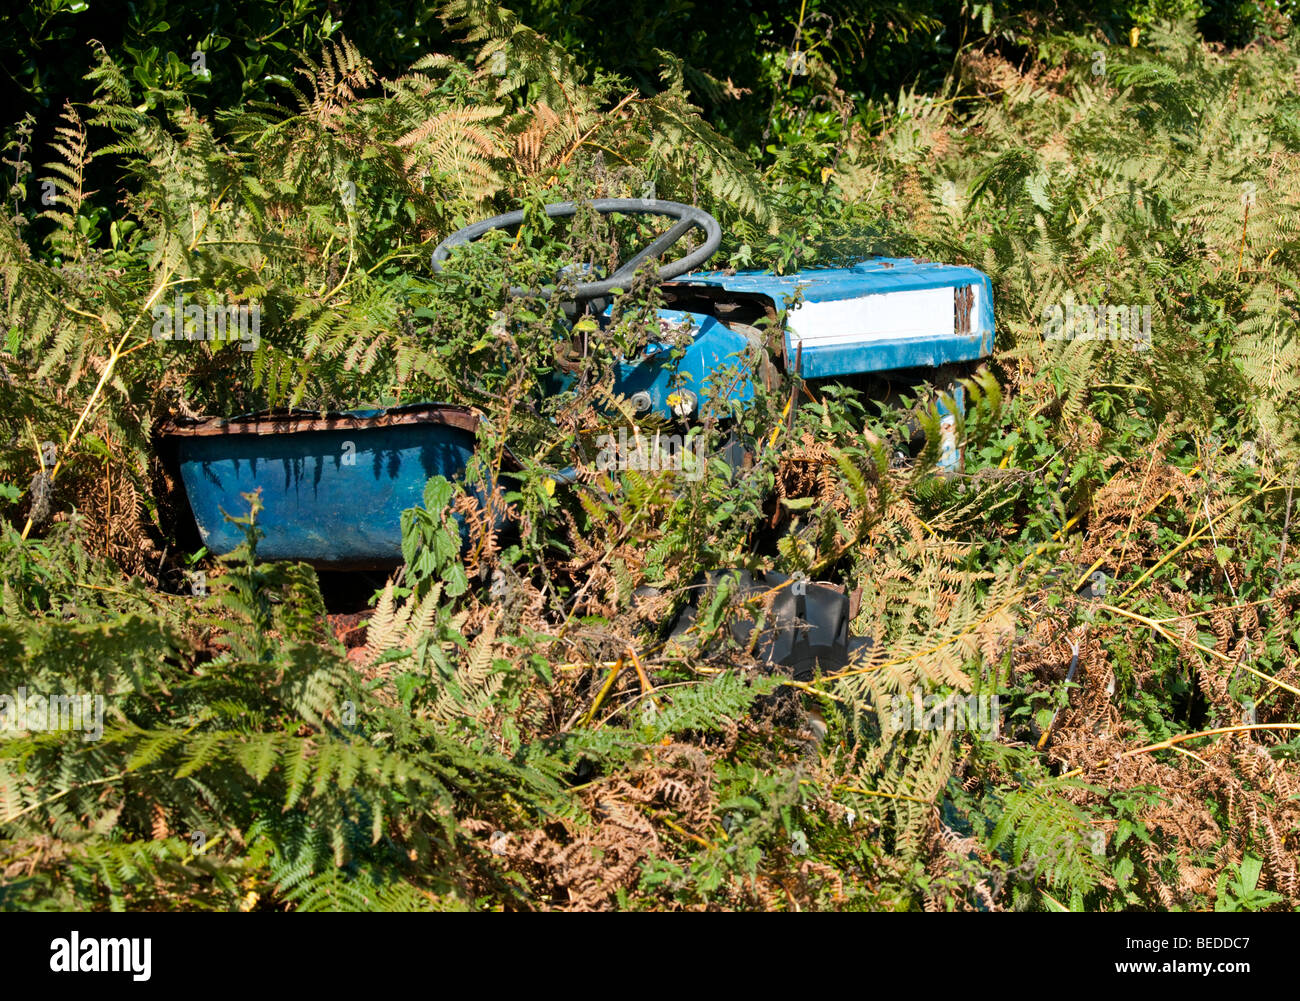 An abandoned tractor in undergrowth on St. Martin's, Isles of Scilly Stock Photo